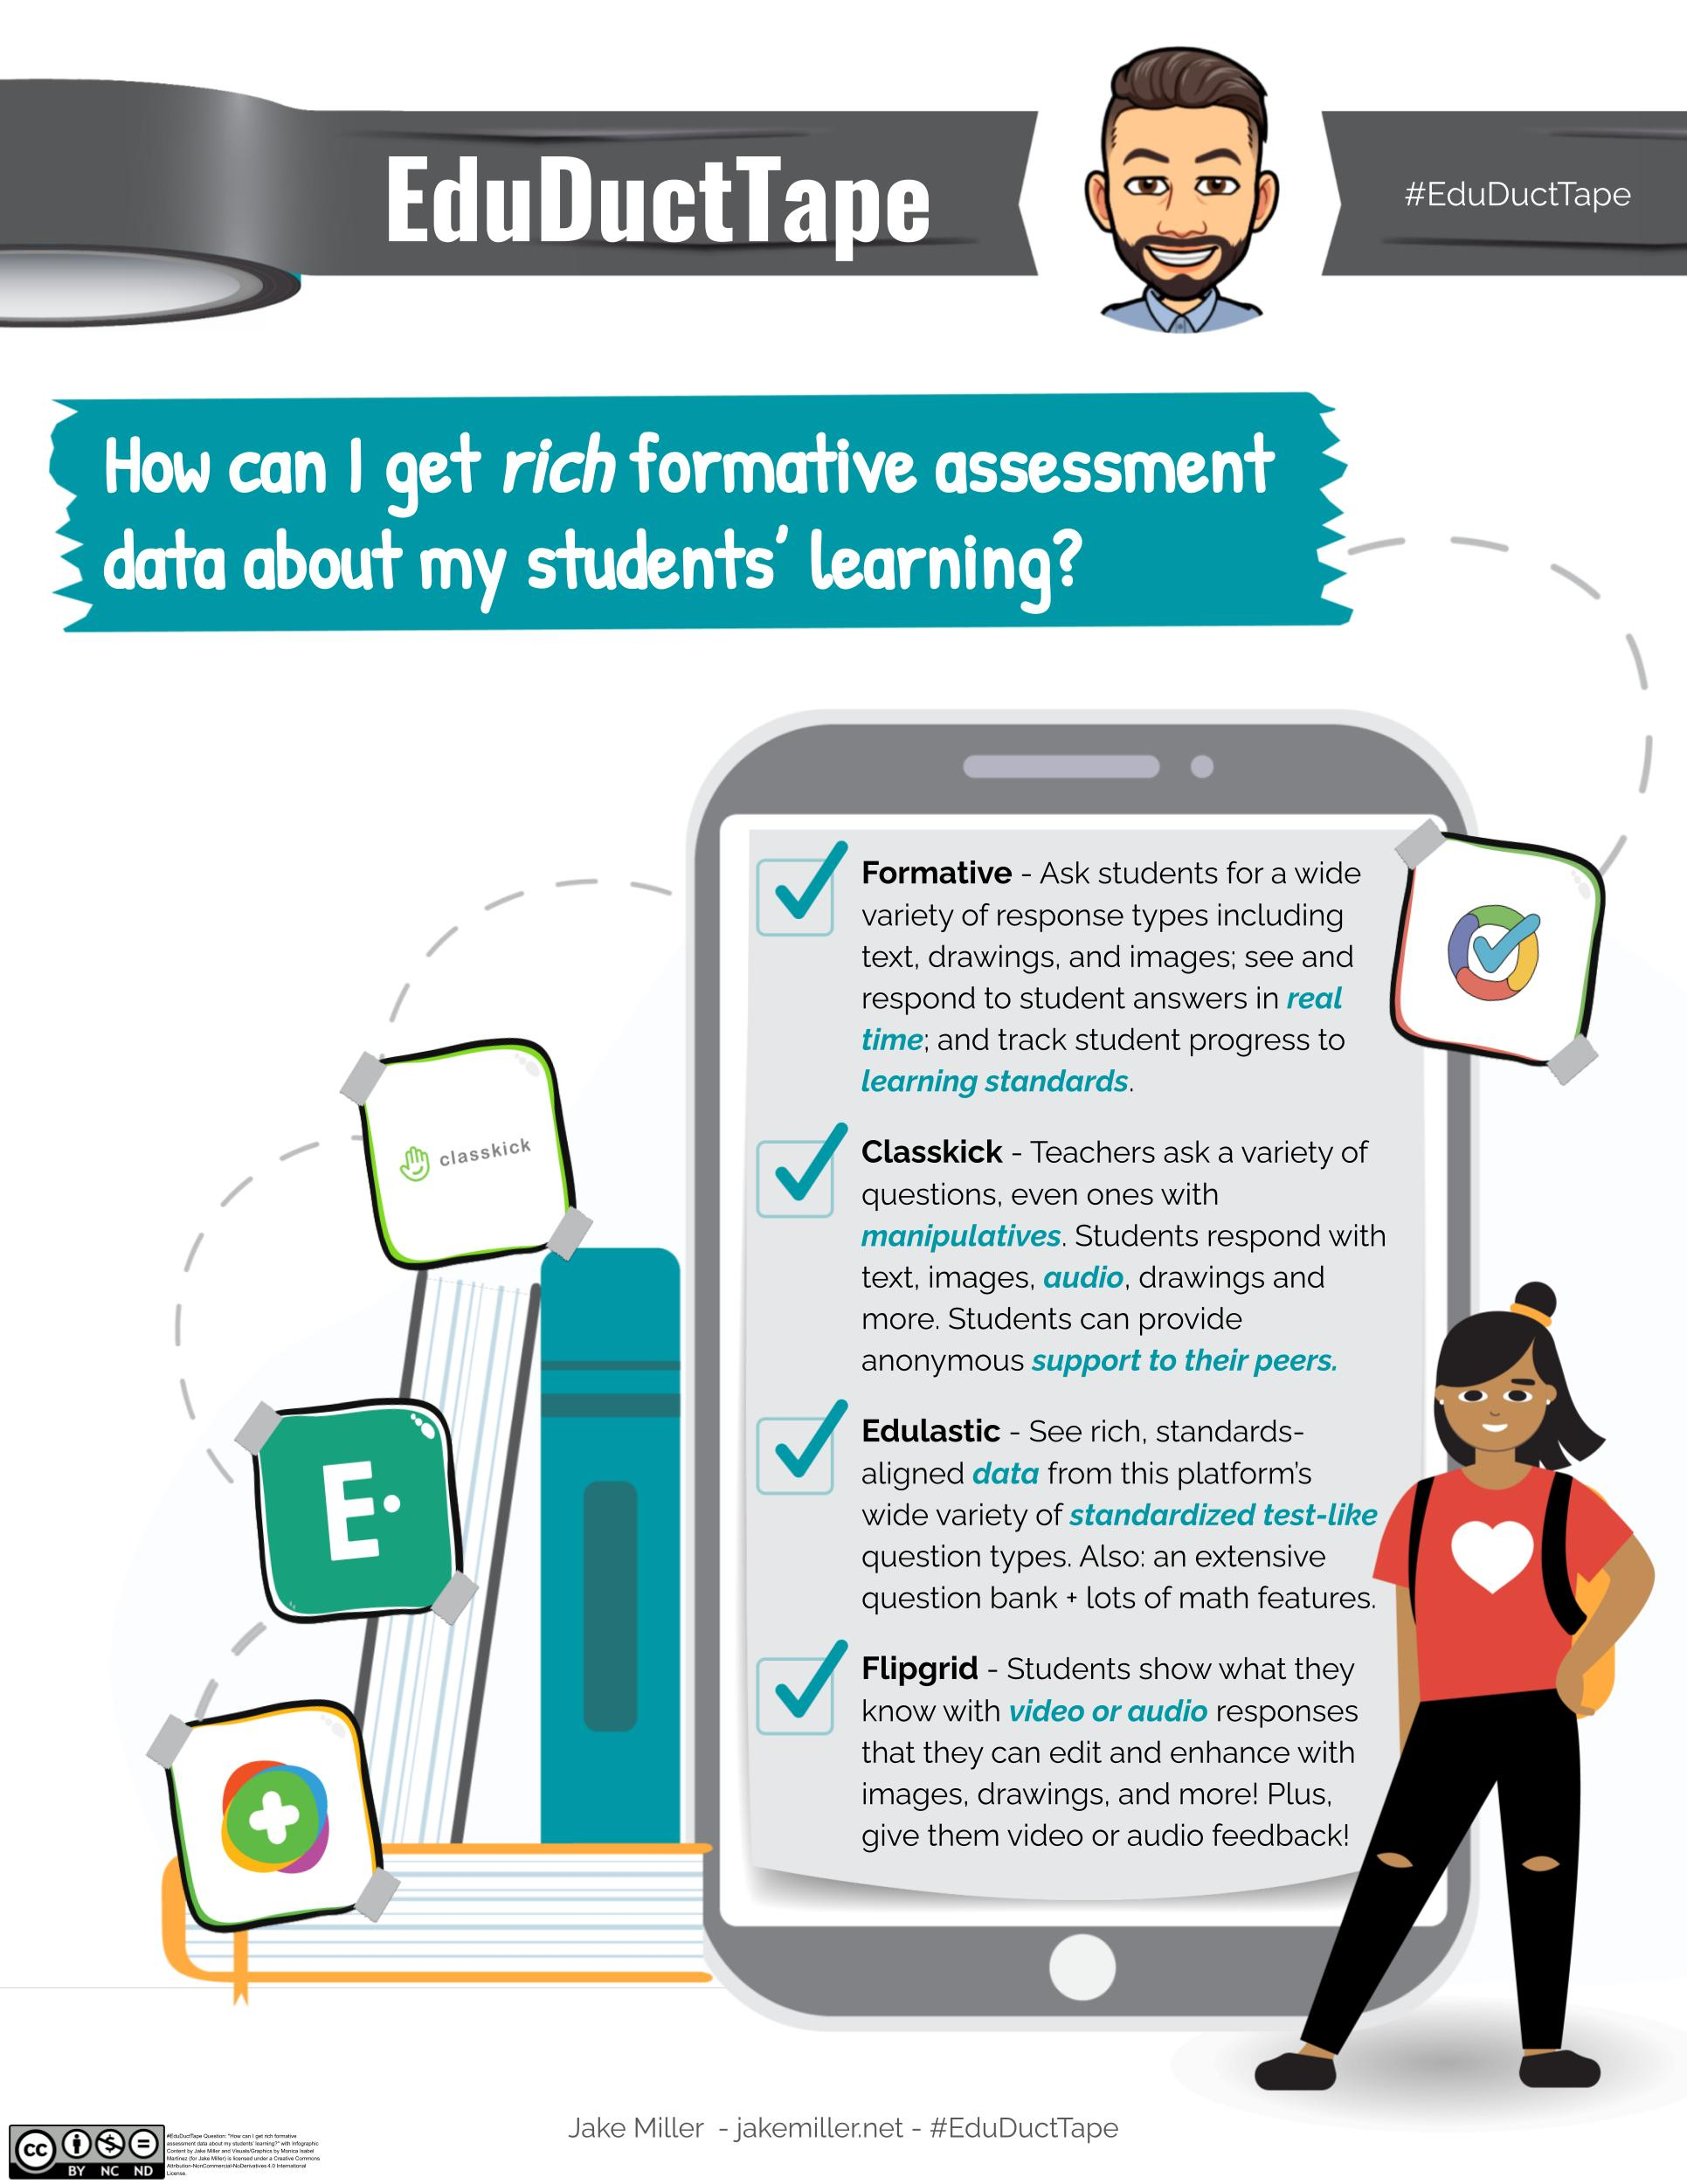 """This infographic is for the #EduDuctTape question """"How can I get rich formative assessment data about my students' learning?"""" The image shows a girl wearing a backpack, some books, the logos for the 4 tools, and a smartphone screen with the following text on it: """"Formative - Ask students for a wide variety of response types including text, drawings, and images; see and respond to student answers in real time; and track student progress to learning standards. Classkick - Teachers ask a variety of questions, even ones with manipulatives. Students respond with text, images, audio, drawings and more. Students can provide anonymous support to their peers. Edulastic - See rich, standards- aligned data from this platform's wide variety of standardized test-like question types. Also: an extensive question bank + lots of math features. Flipgrid - Students show what they know with video or audio responses that they can edit and enhance with images, drawings, and more! Plus, give them video or audio feedback!"""""""